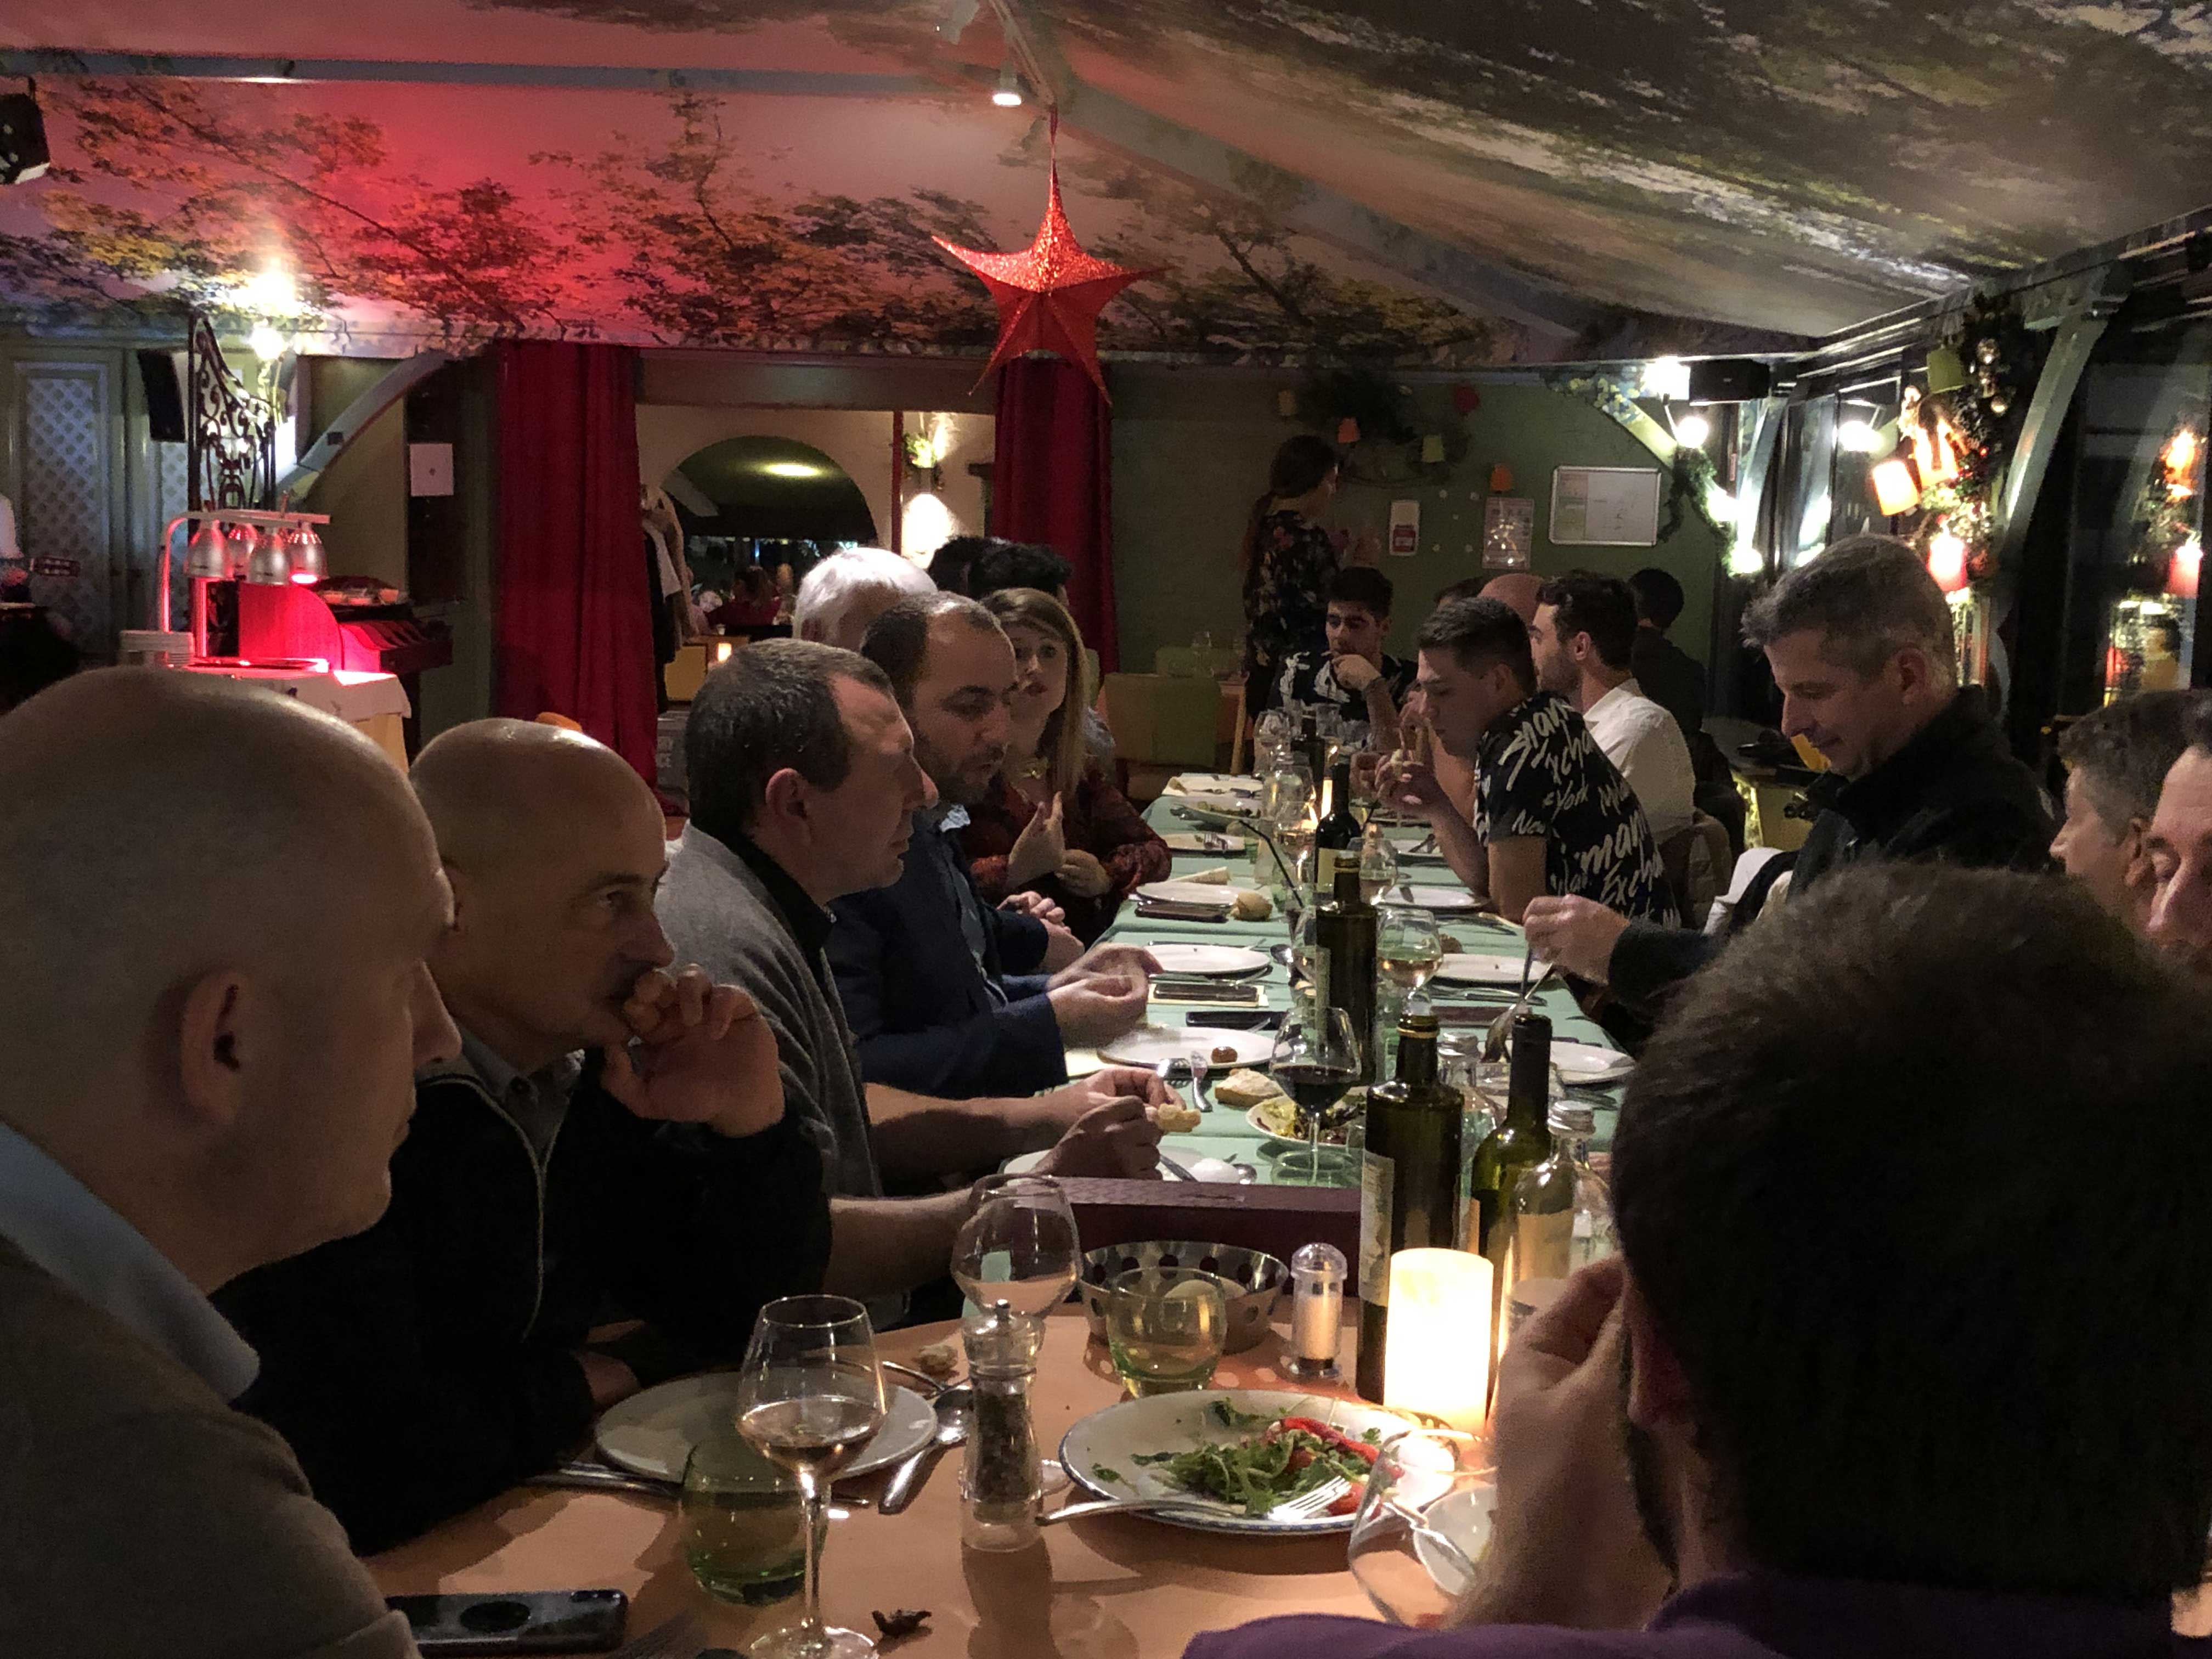 Repas-de-fin-d'année-aucop-marseille-nice-paris-interne-noel-audiovisuel-event-evenement-evenementiel-communication-equipe-team